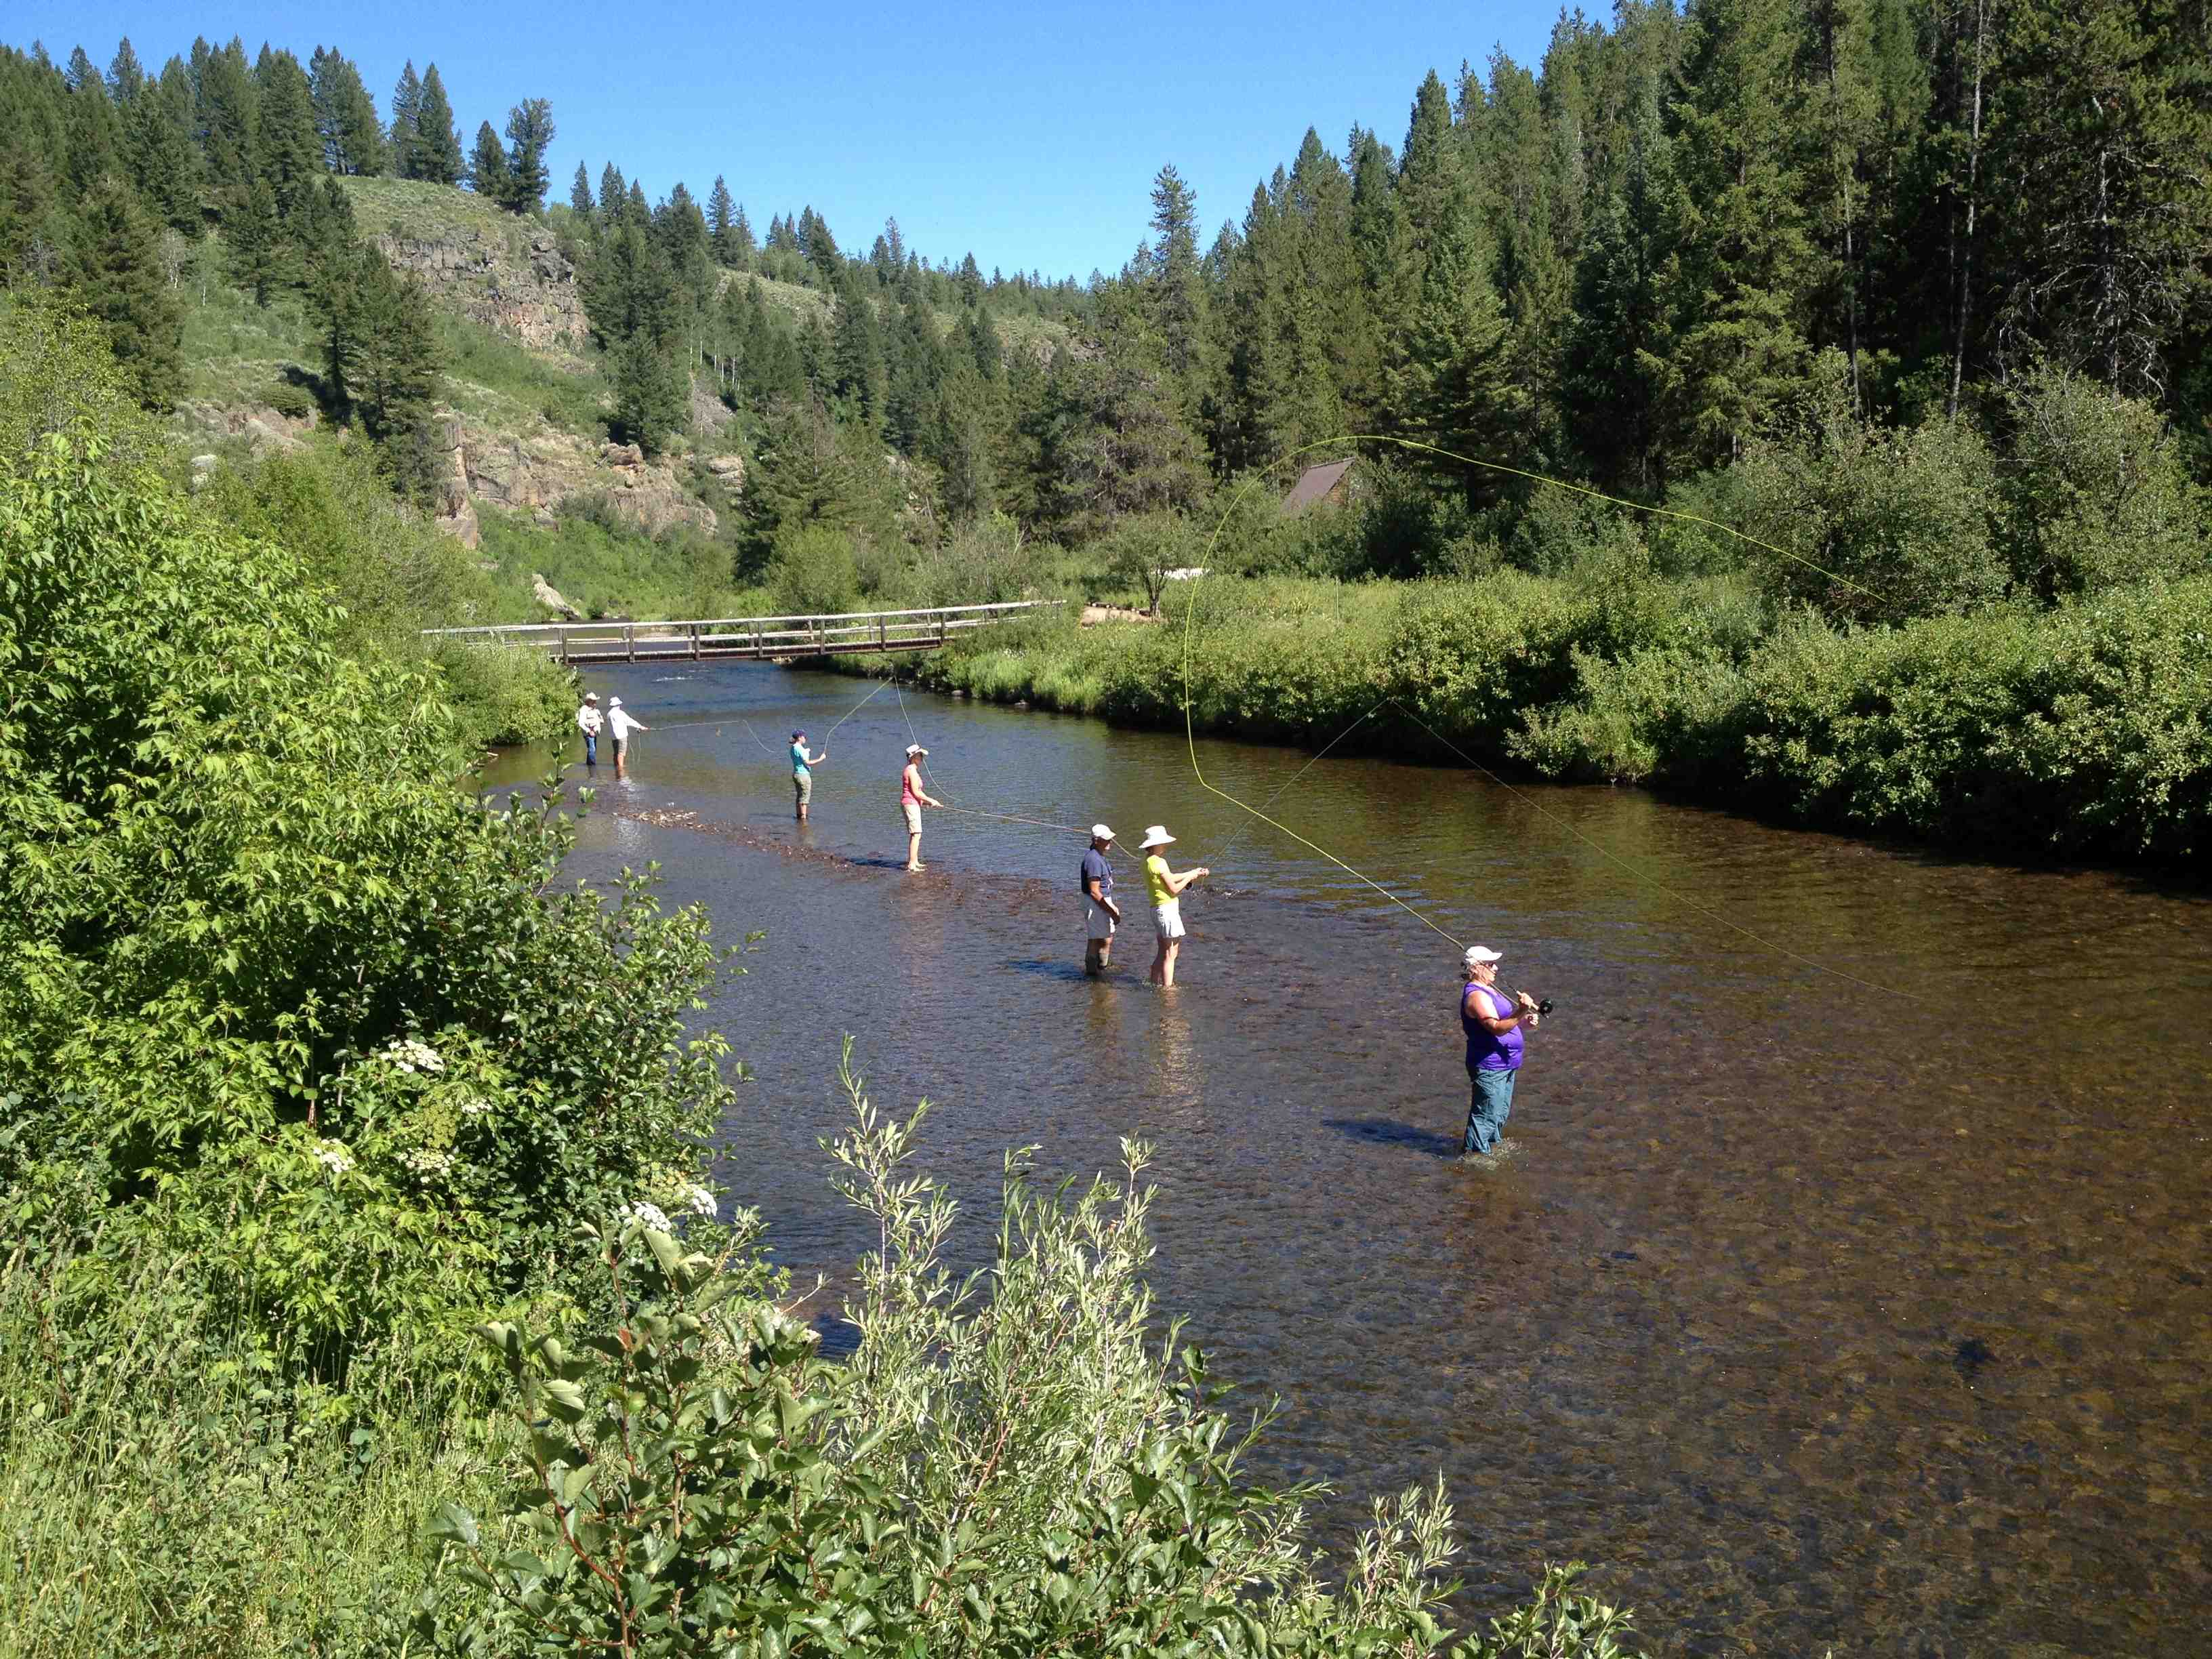 Fly fishing 101 class in idaho learn how to fly fish for for South fork snake river fishing report